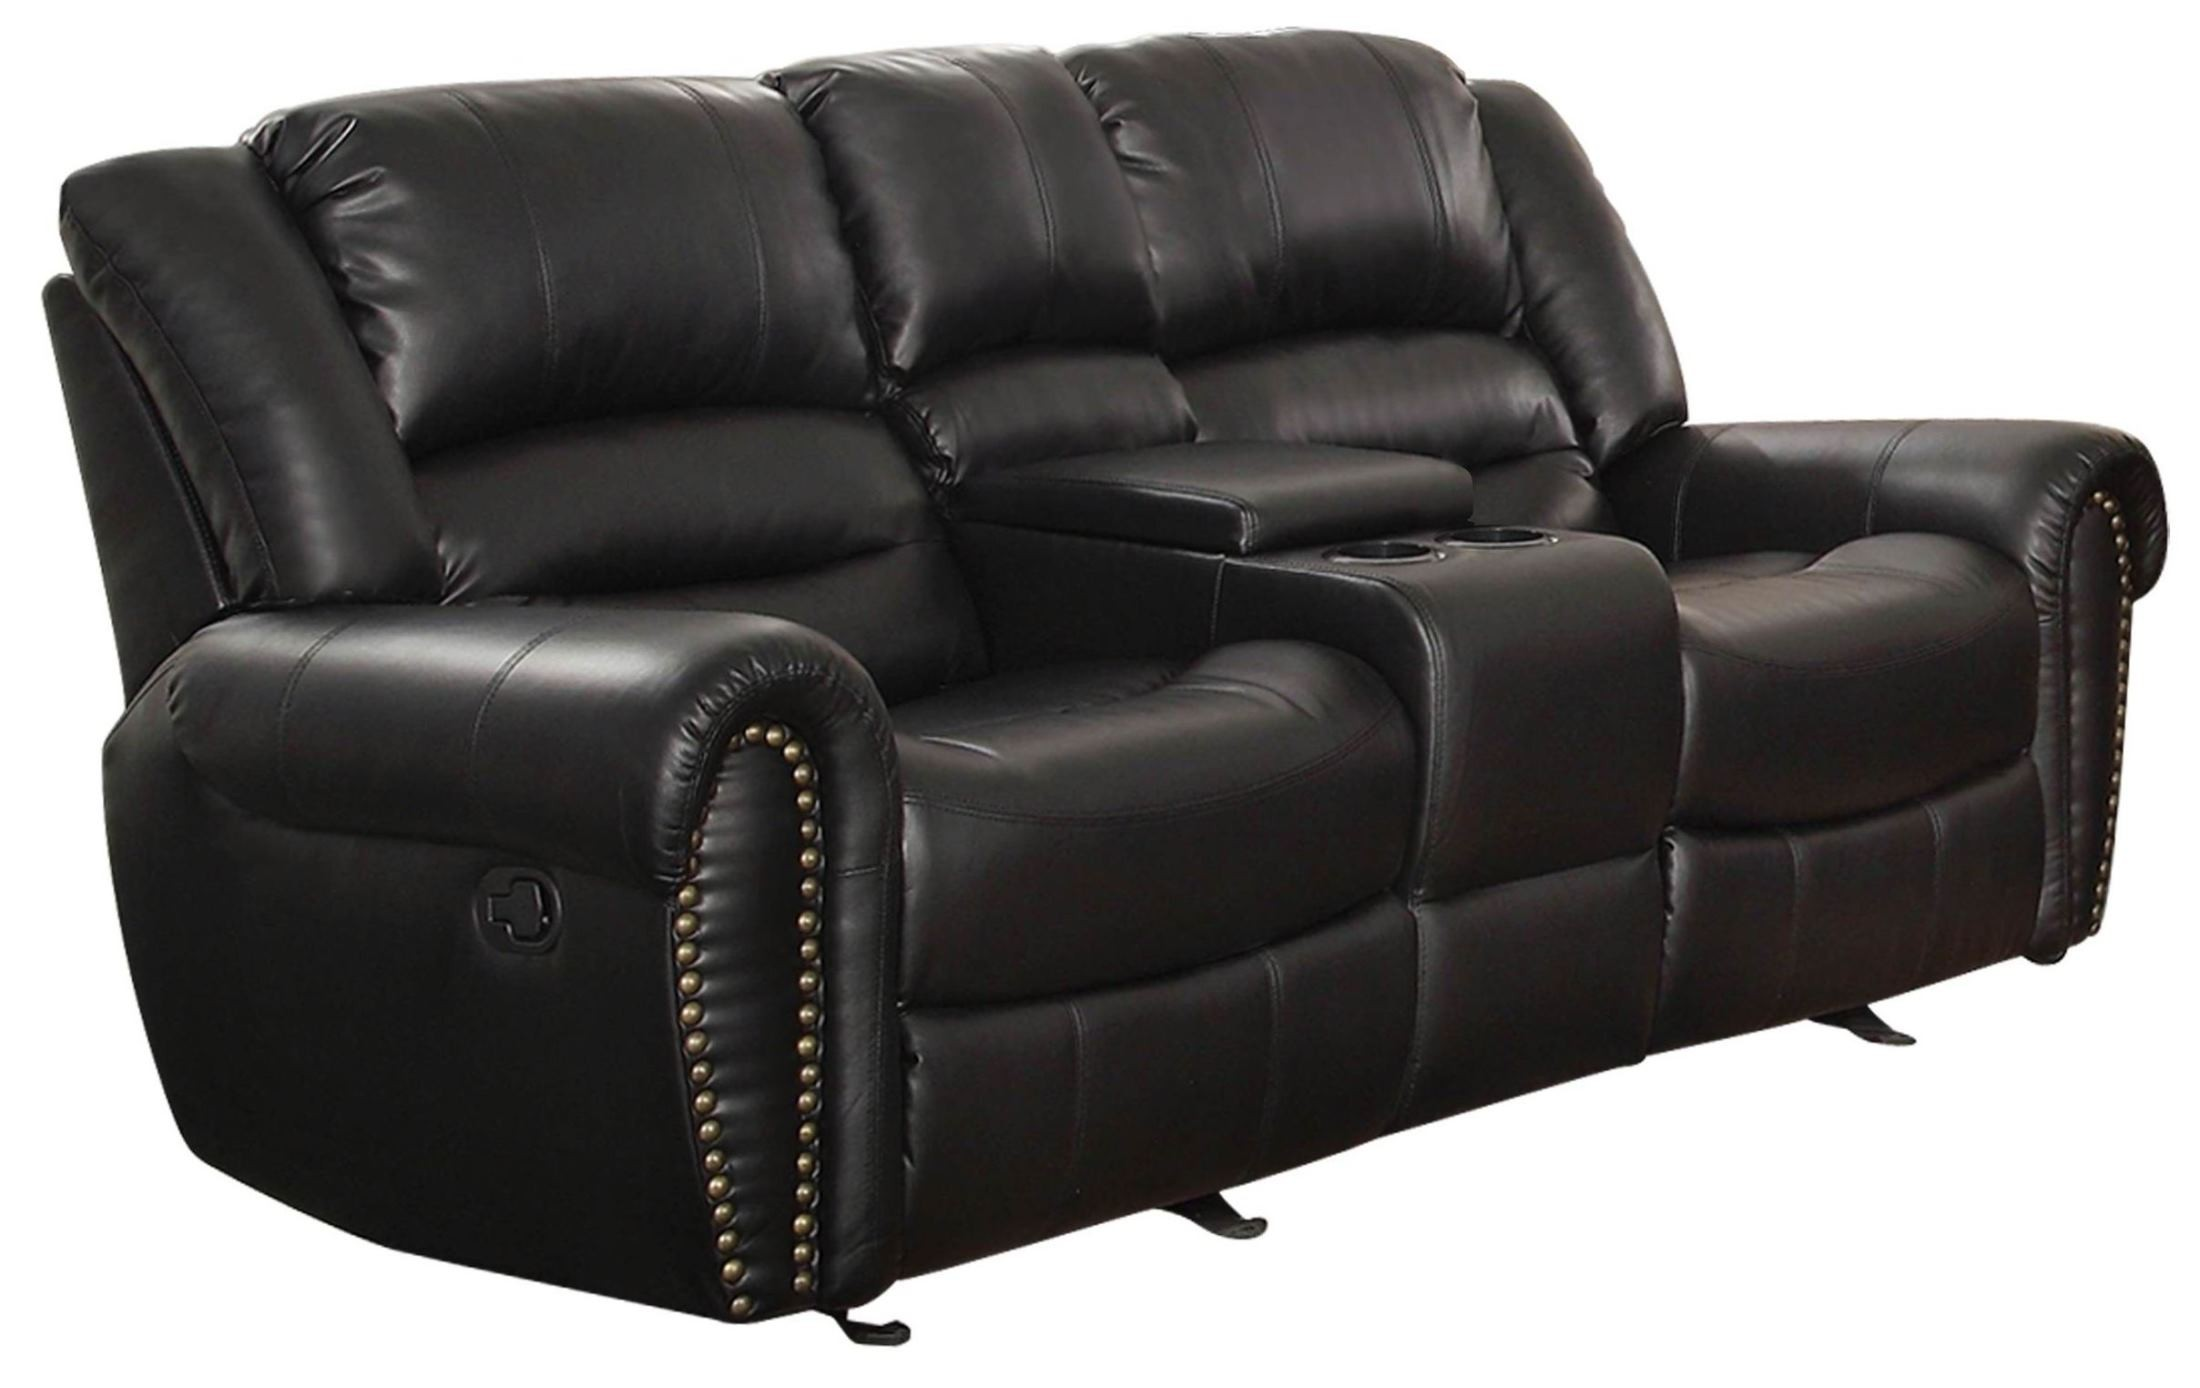 recliner sofa set 3 2 1 sac cork center hill black double reclining living room from